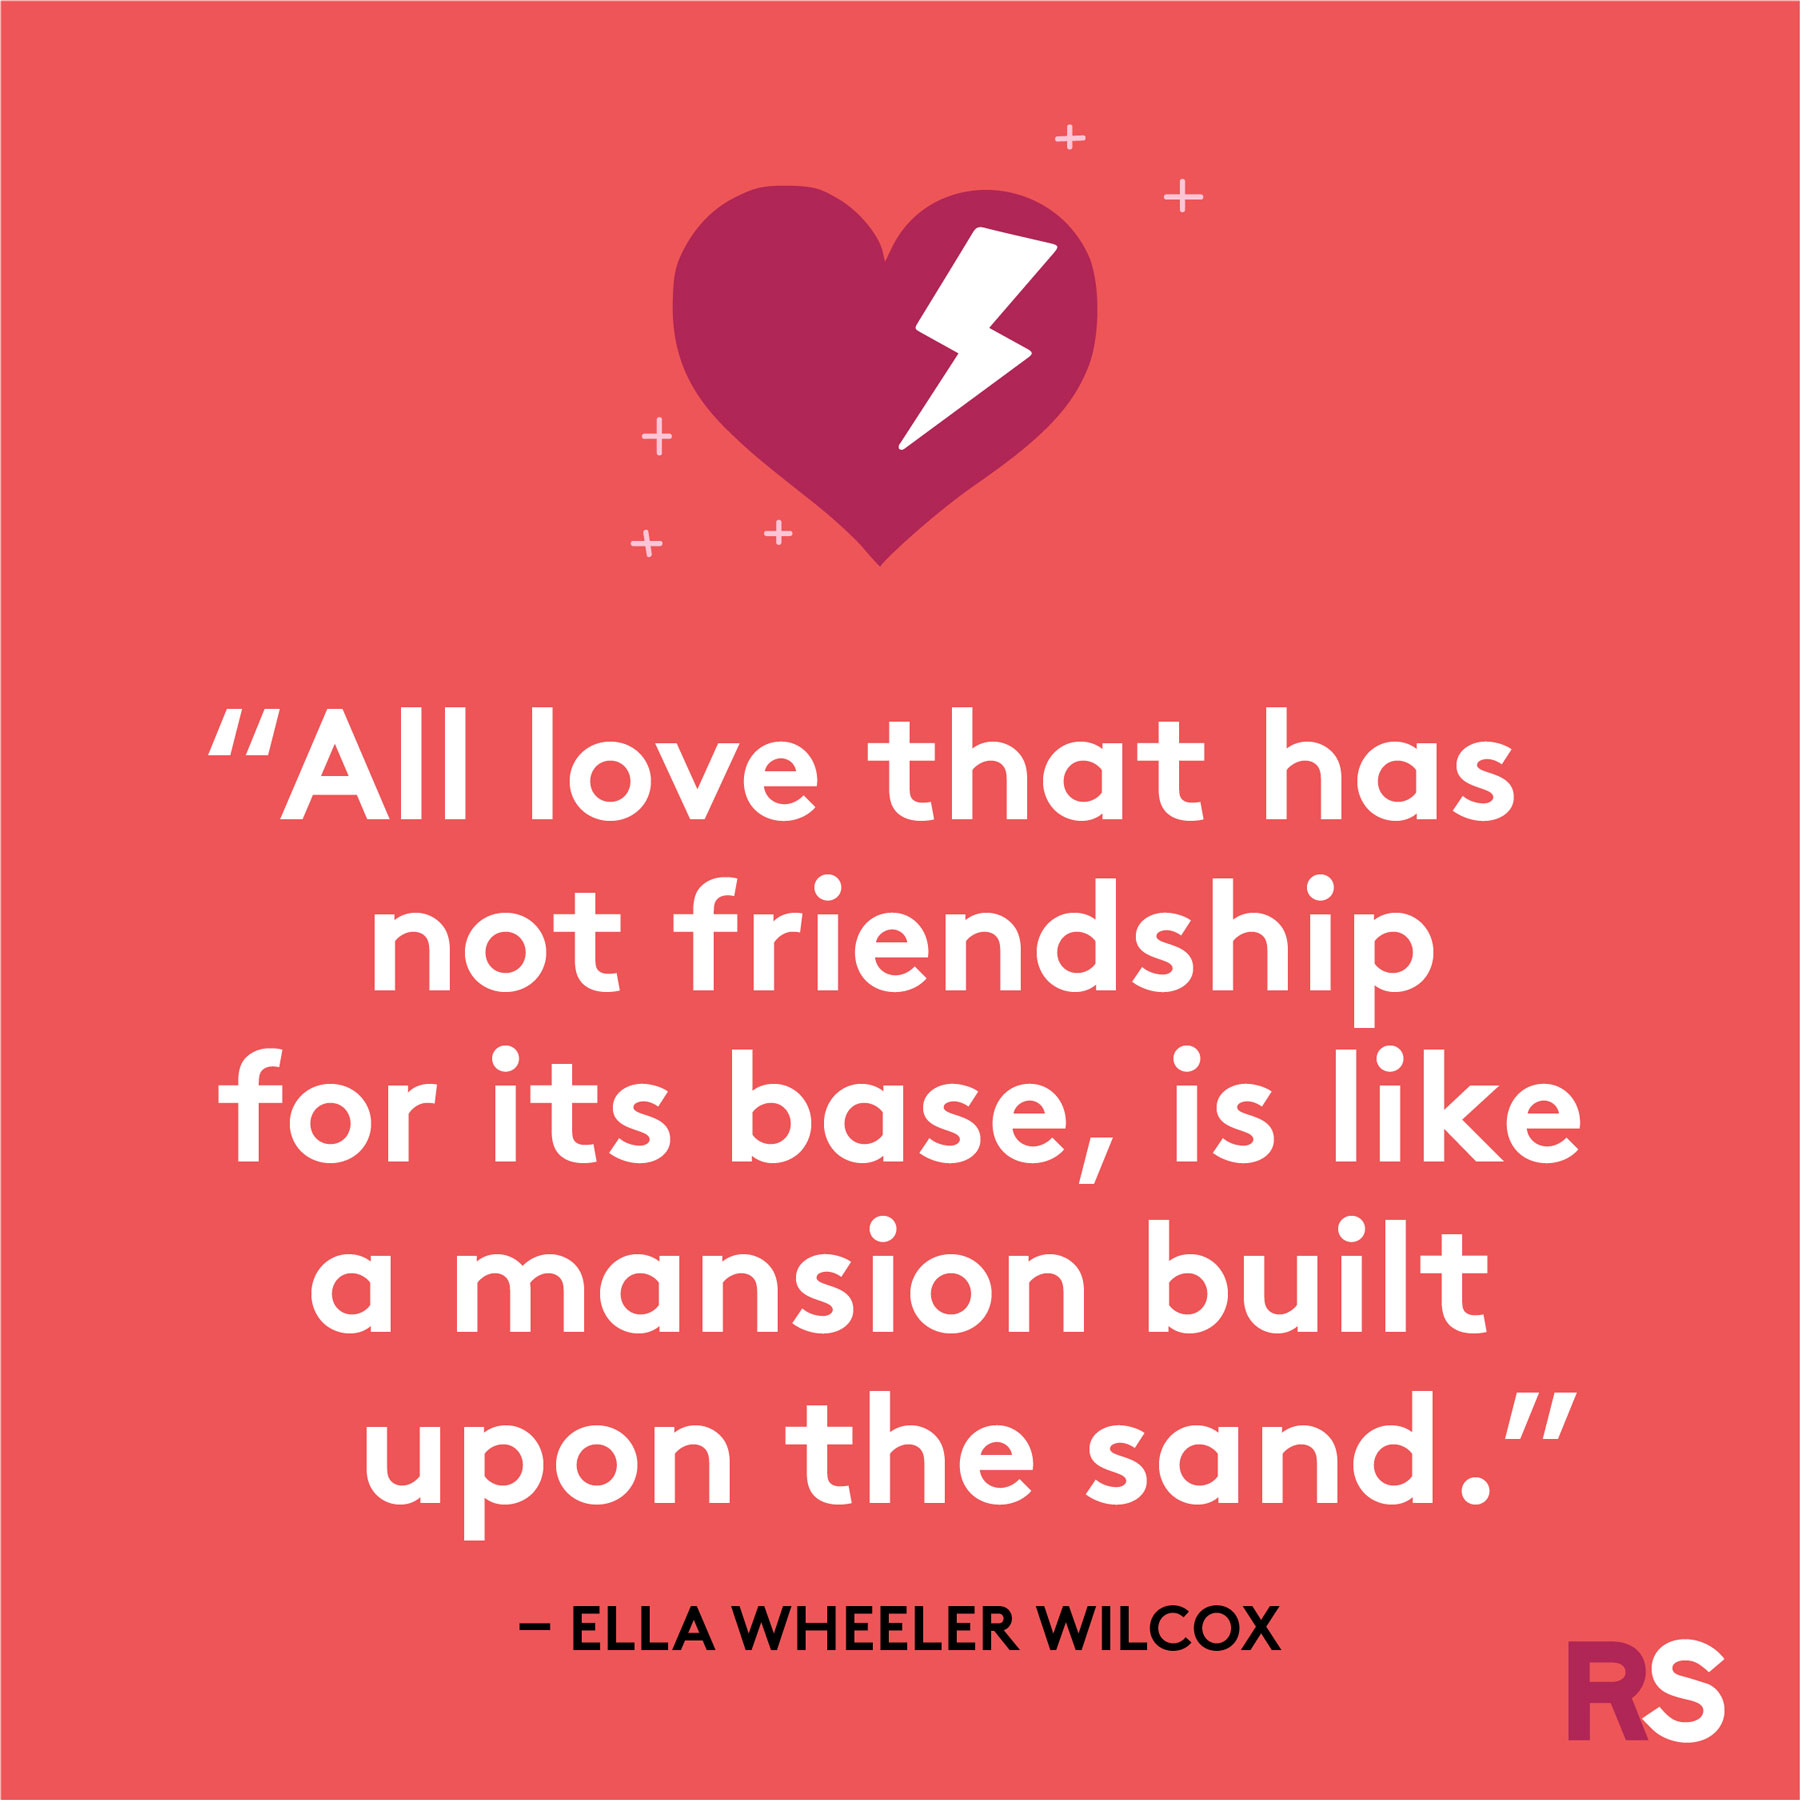 """All love that has not friendship for its base, is like a mansion built upon the sand."""